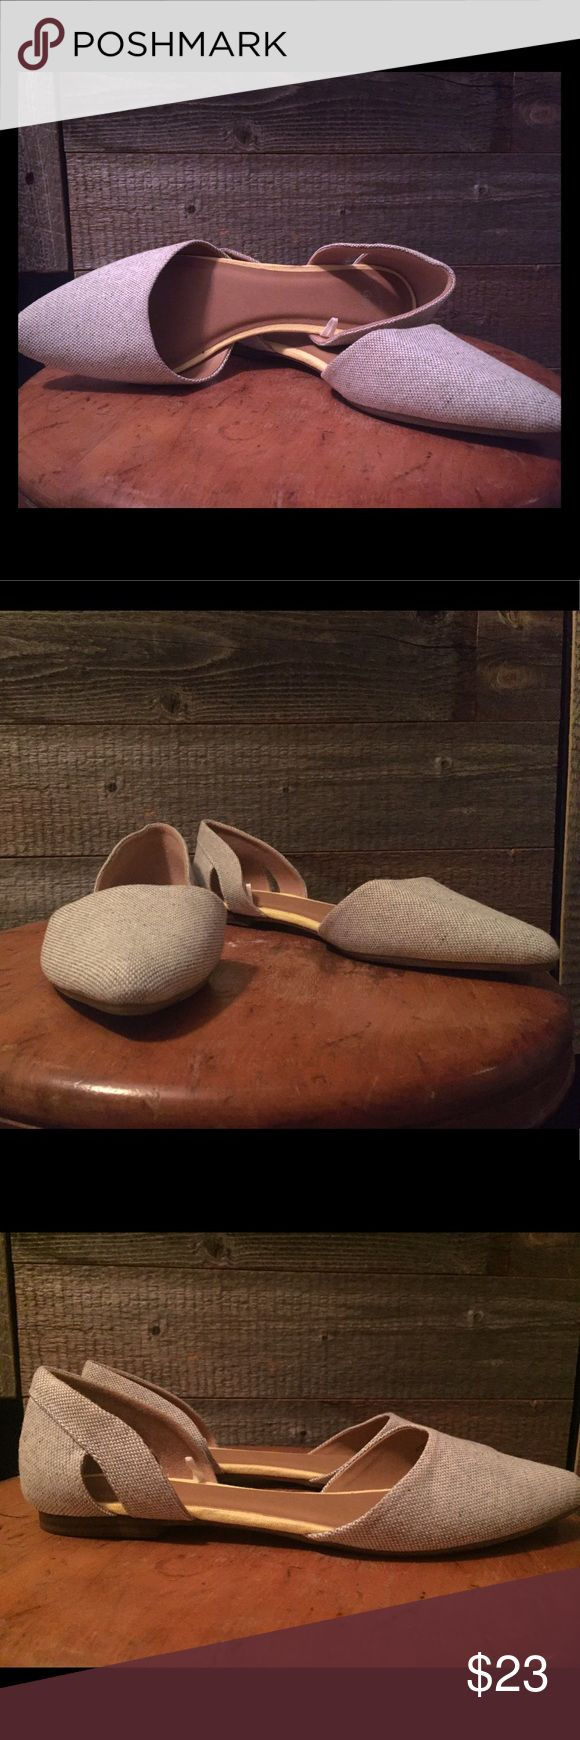 Gap fabric flats Size 8 Gap brand flats.  Fabric on the outside is grey/off white tint, yellow lining on the inside and brown leather type insole.  Never worn, no tags.  Last picture shows a slight mark on the left heel, both heels have the slight mark. GAP Shoes Flats & Loafers